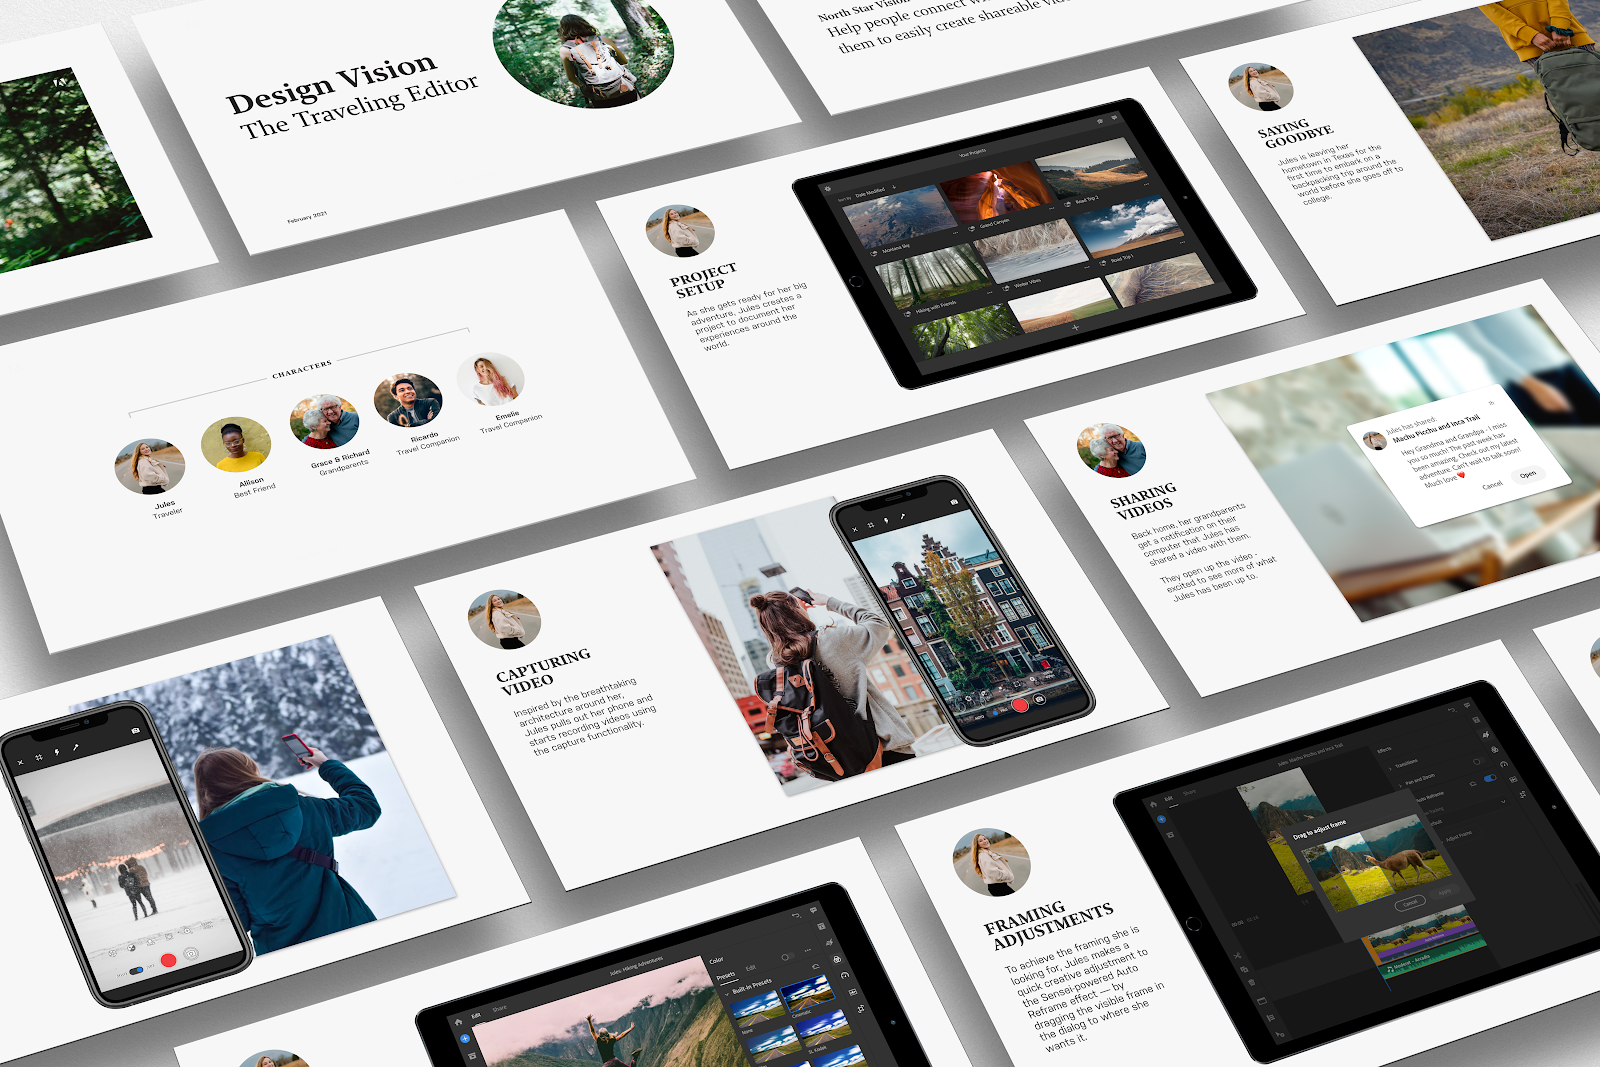 An example of a design vision story presentation in the format of a slidedeck.